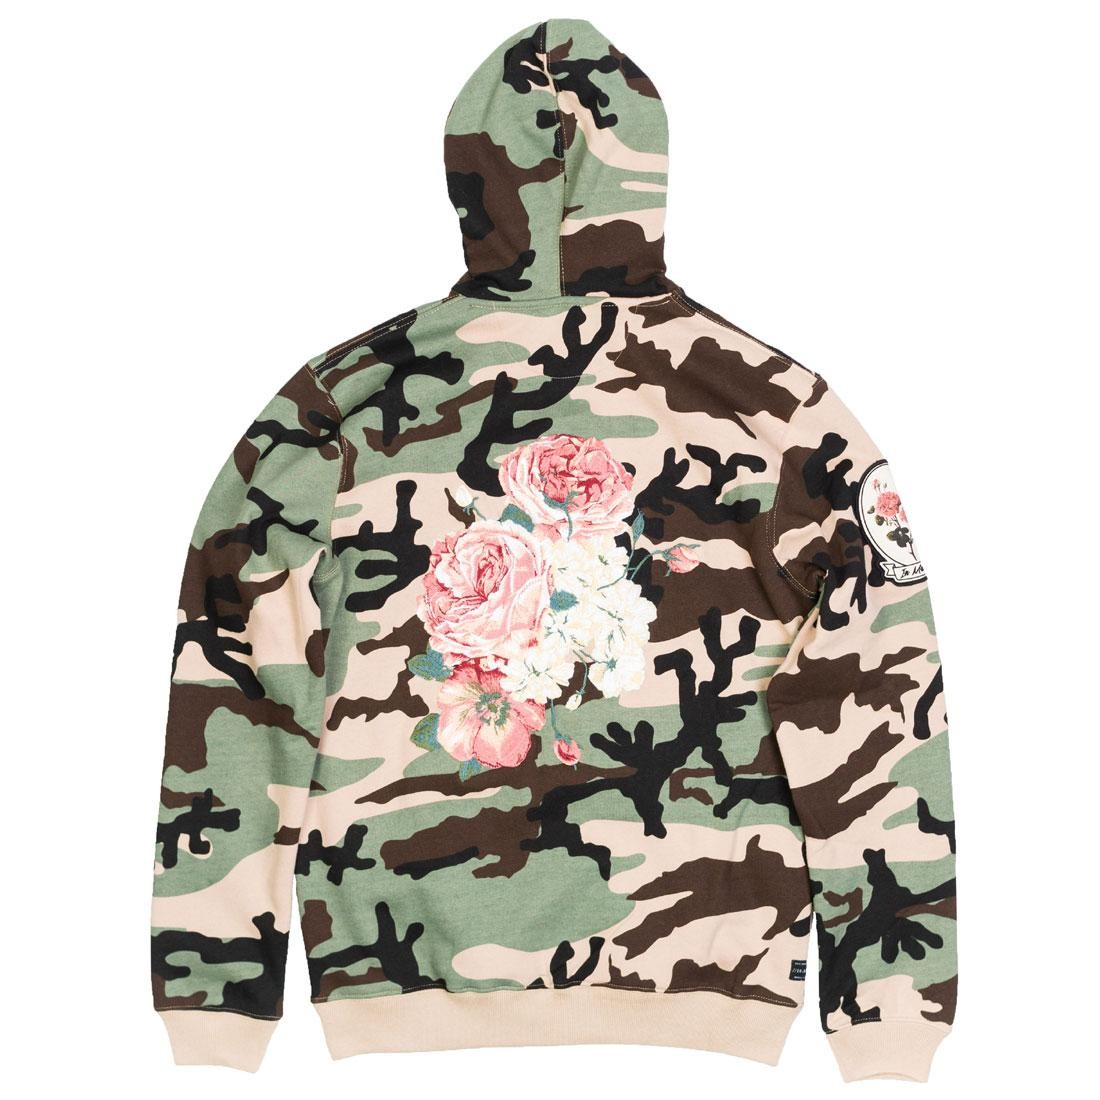 10 Deep Men Thinking Of Your Passing Hoody (camo / woodland)